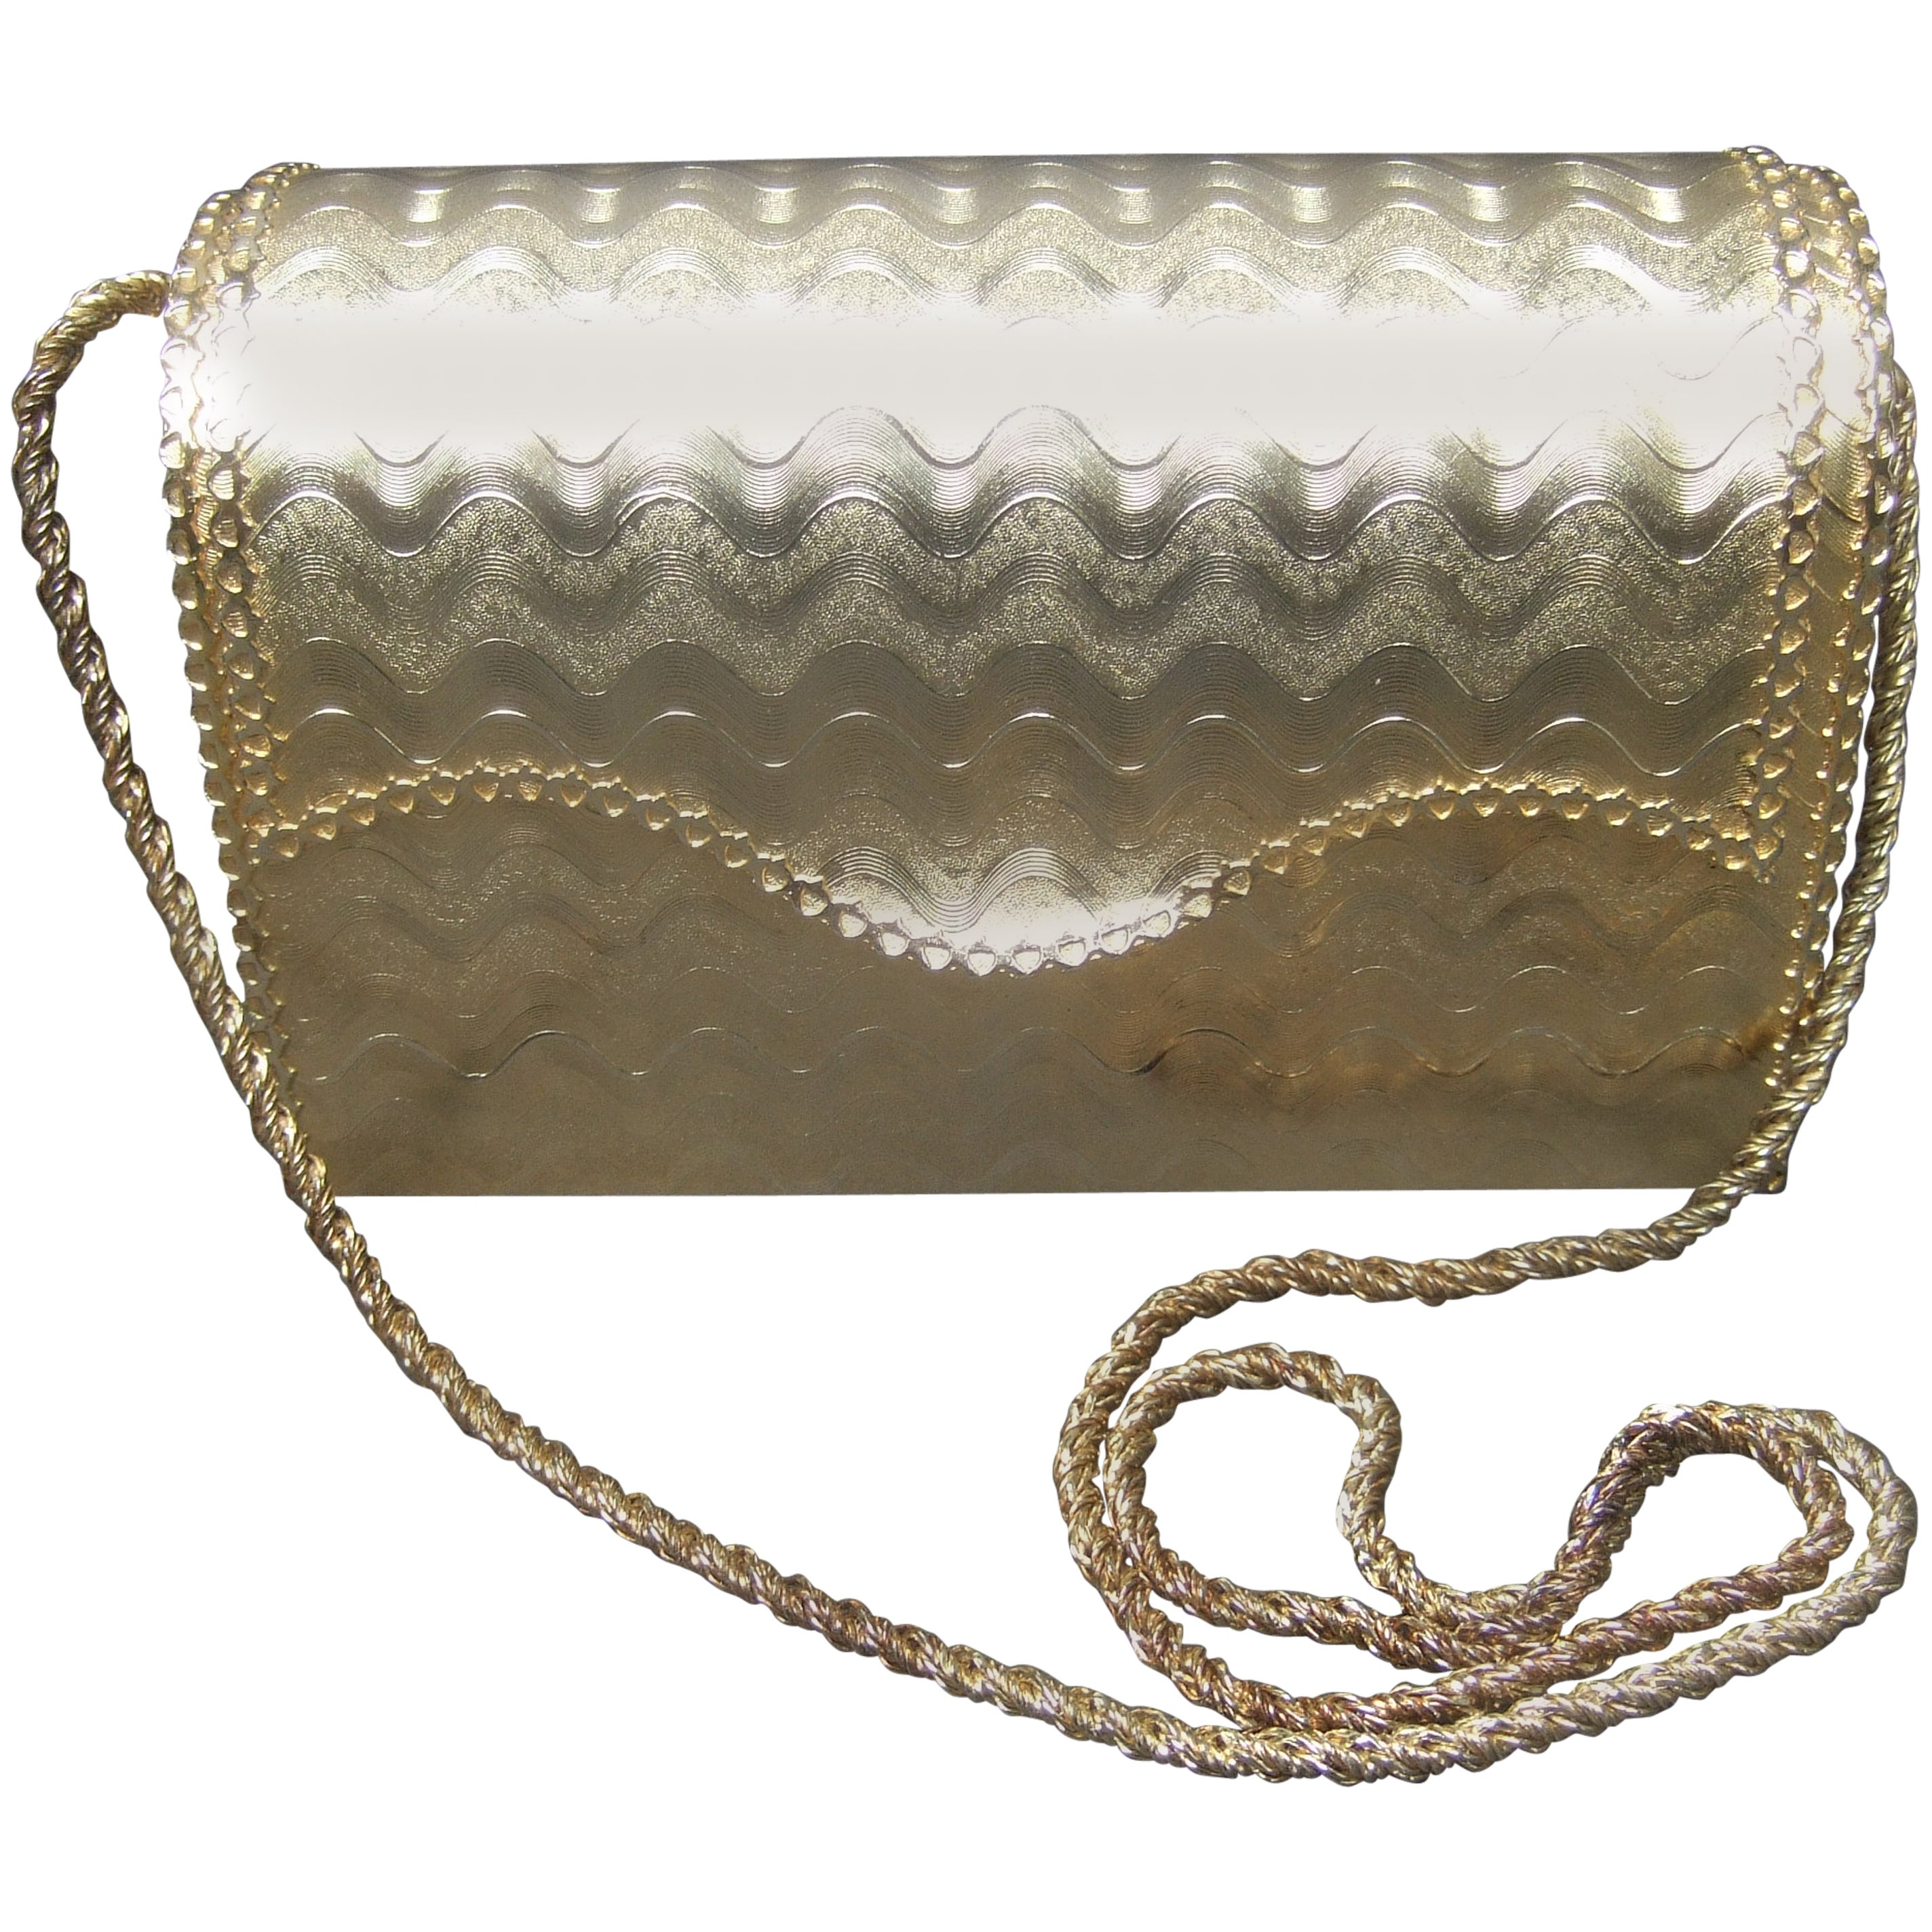 Saks Fifth Avenue Gilt Metal Lady Bug Evening Bag Made In Italy C 1970 dd3BFD